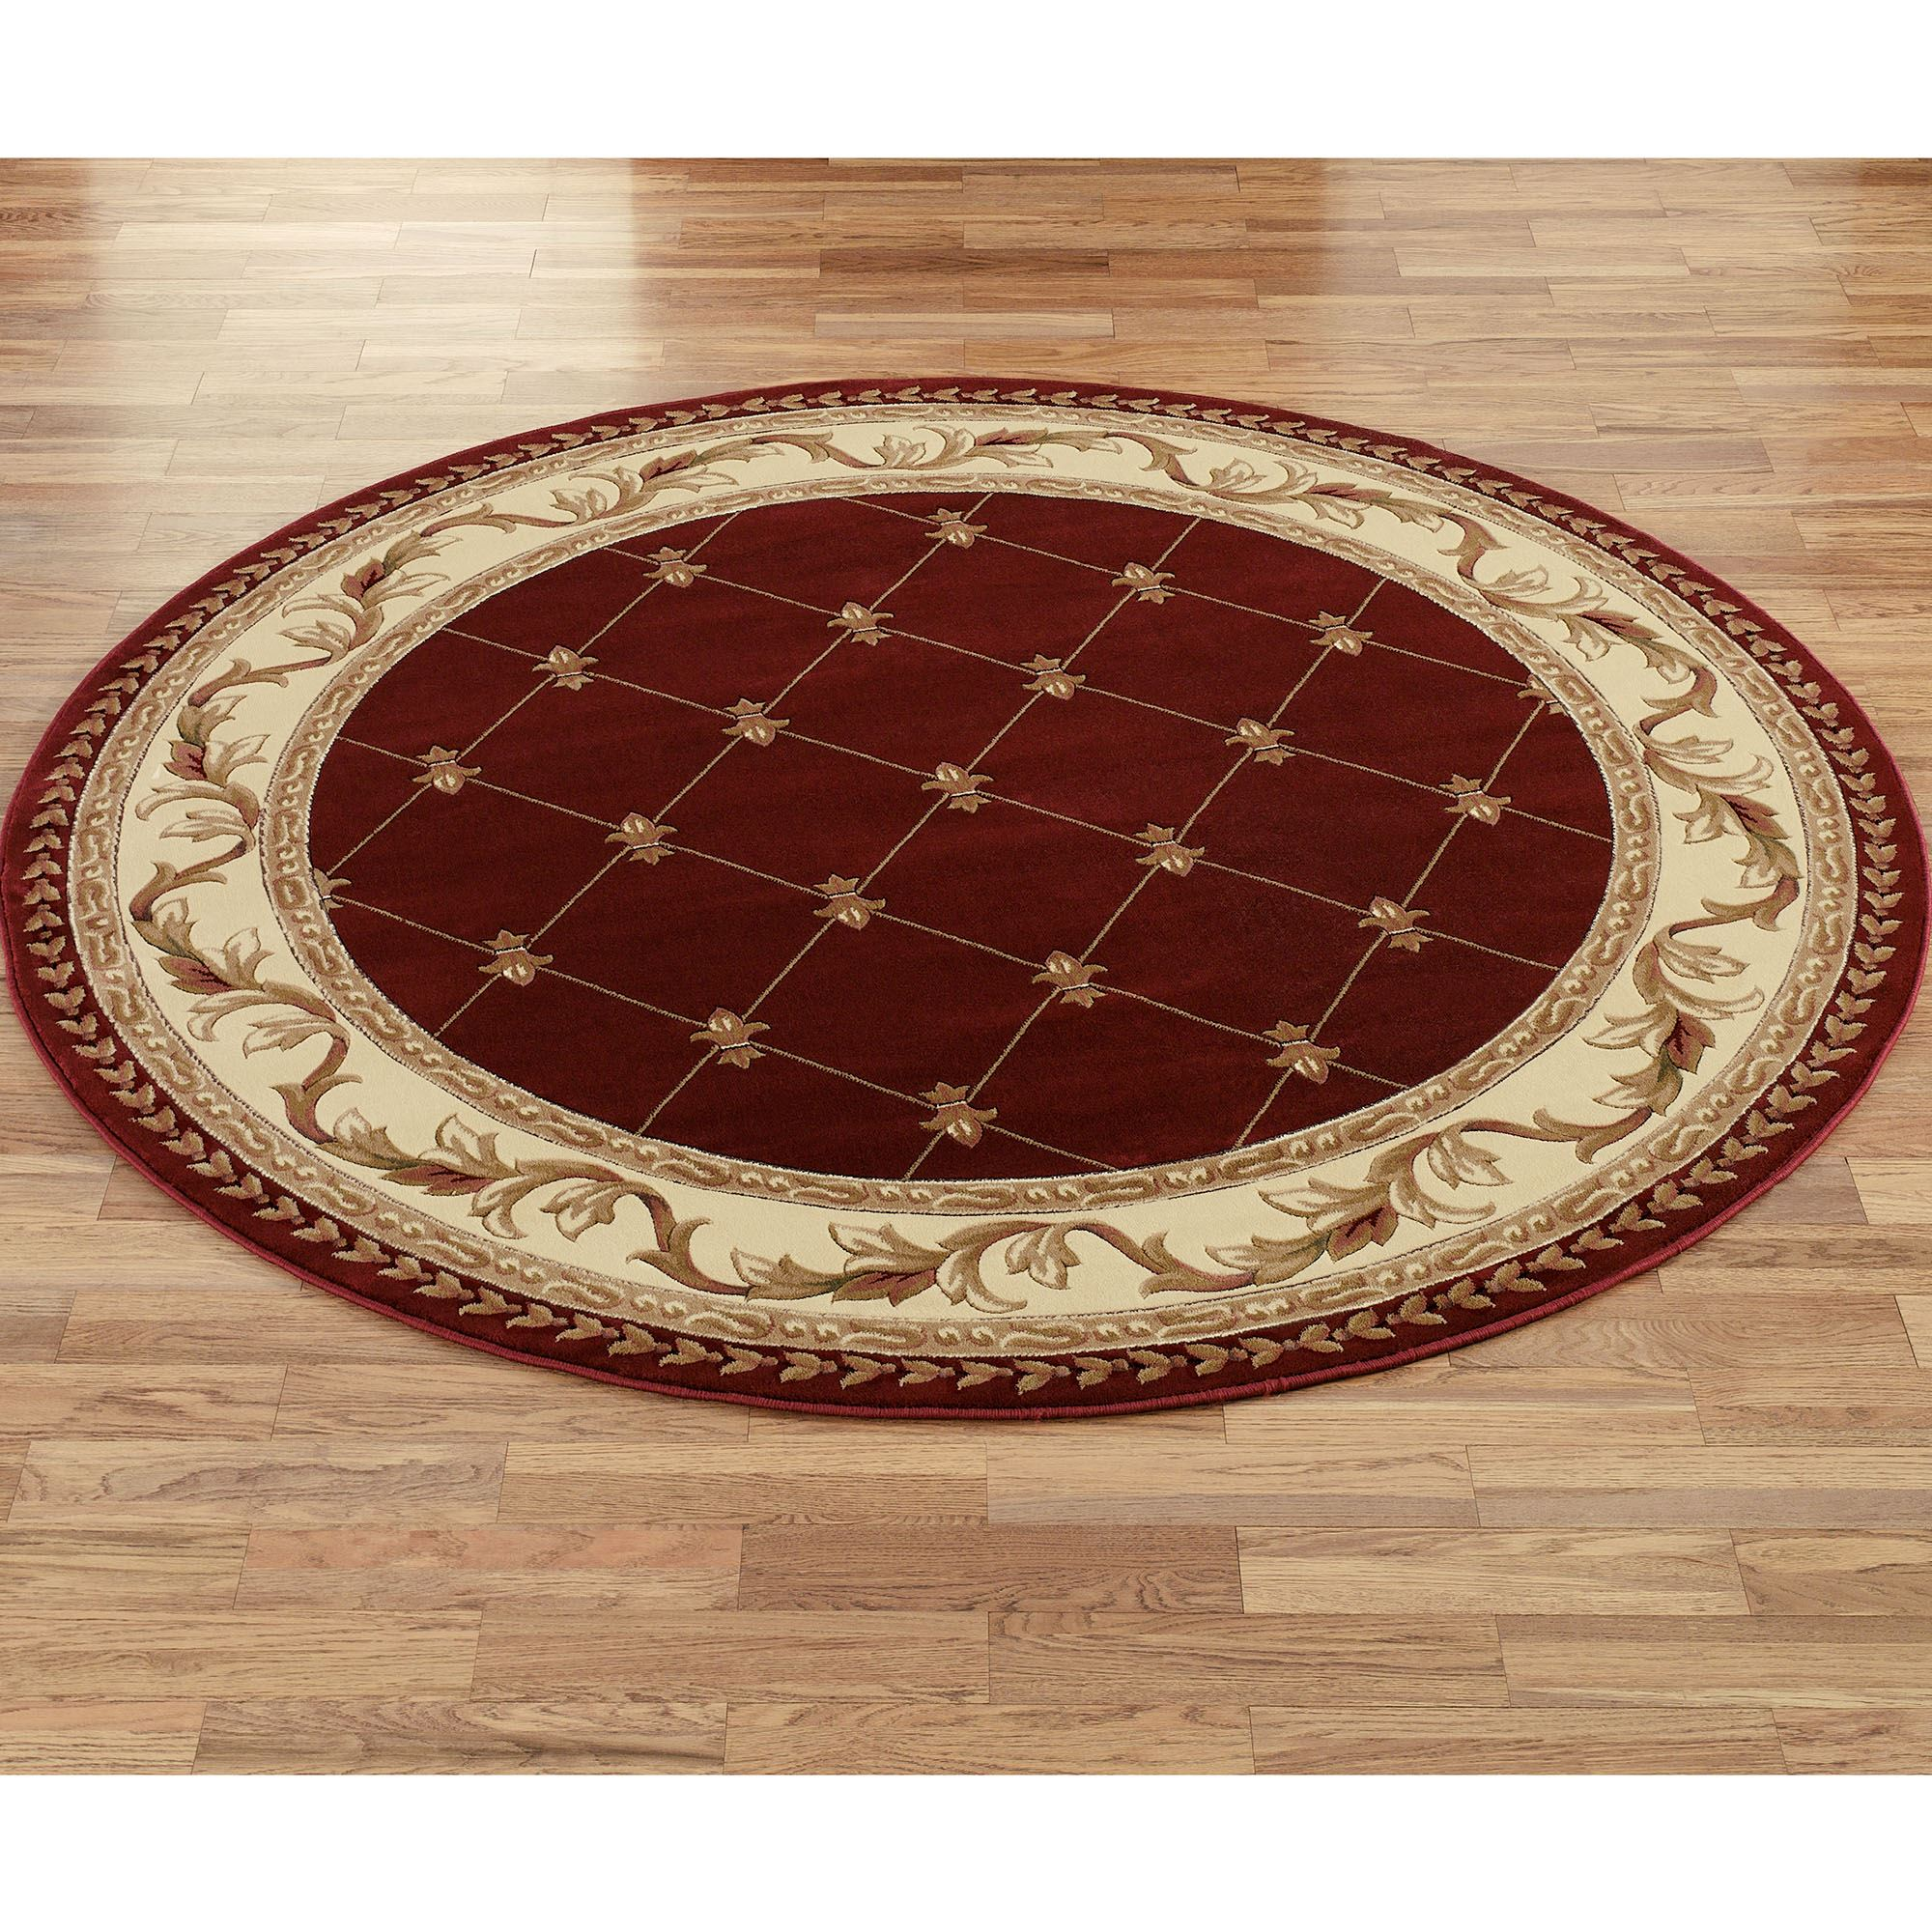 Aurelius Round Area Rug. Basement Water Proofing Nj. Barbra Streisand Mall Basement. Total Basement Finishing Cost. Home Addition With Basement. Cost To Finish Basement Per Sq Ft. American Perfection Basement Waterproofing. Basement Bar Decorating Ideas. Lamina Propria Basement Membrane